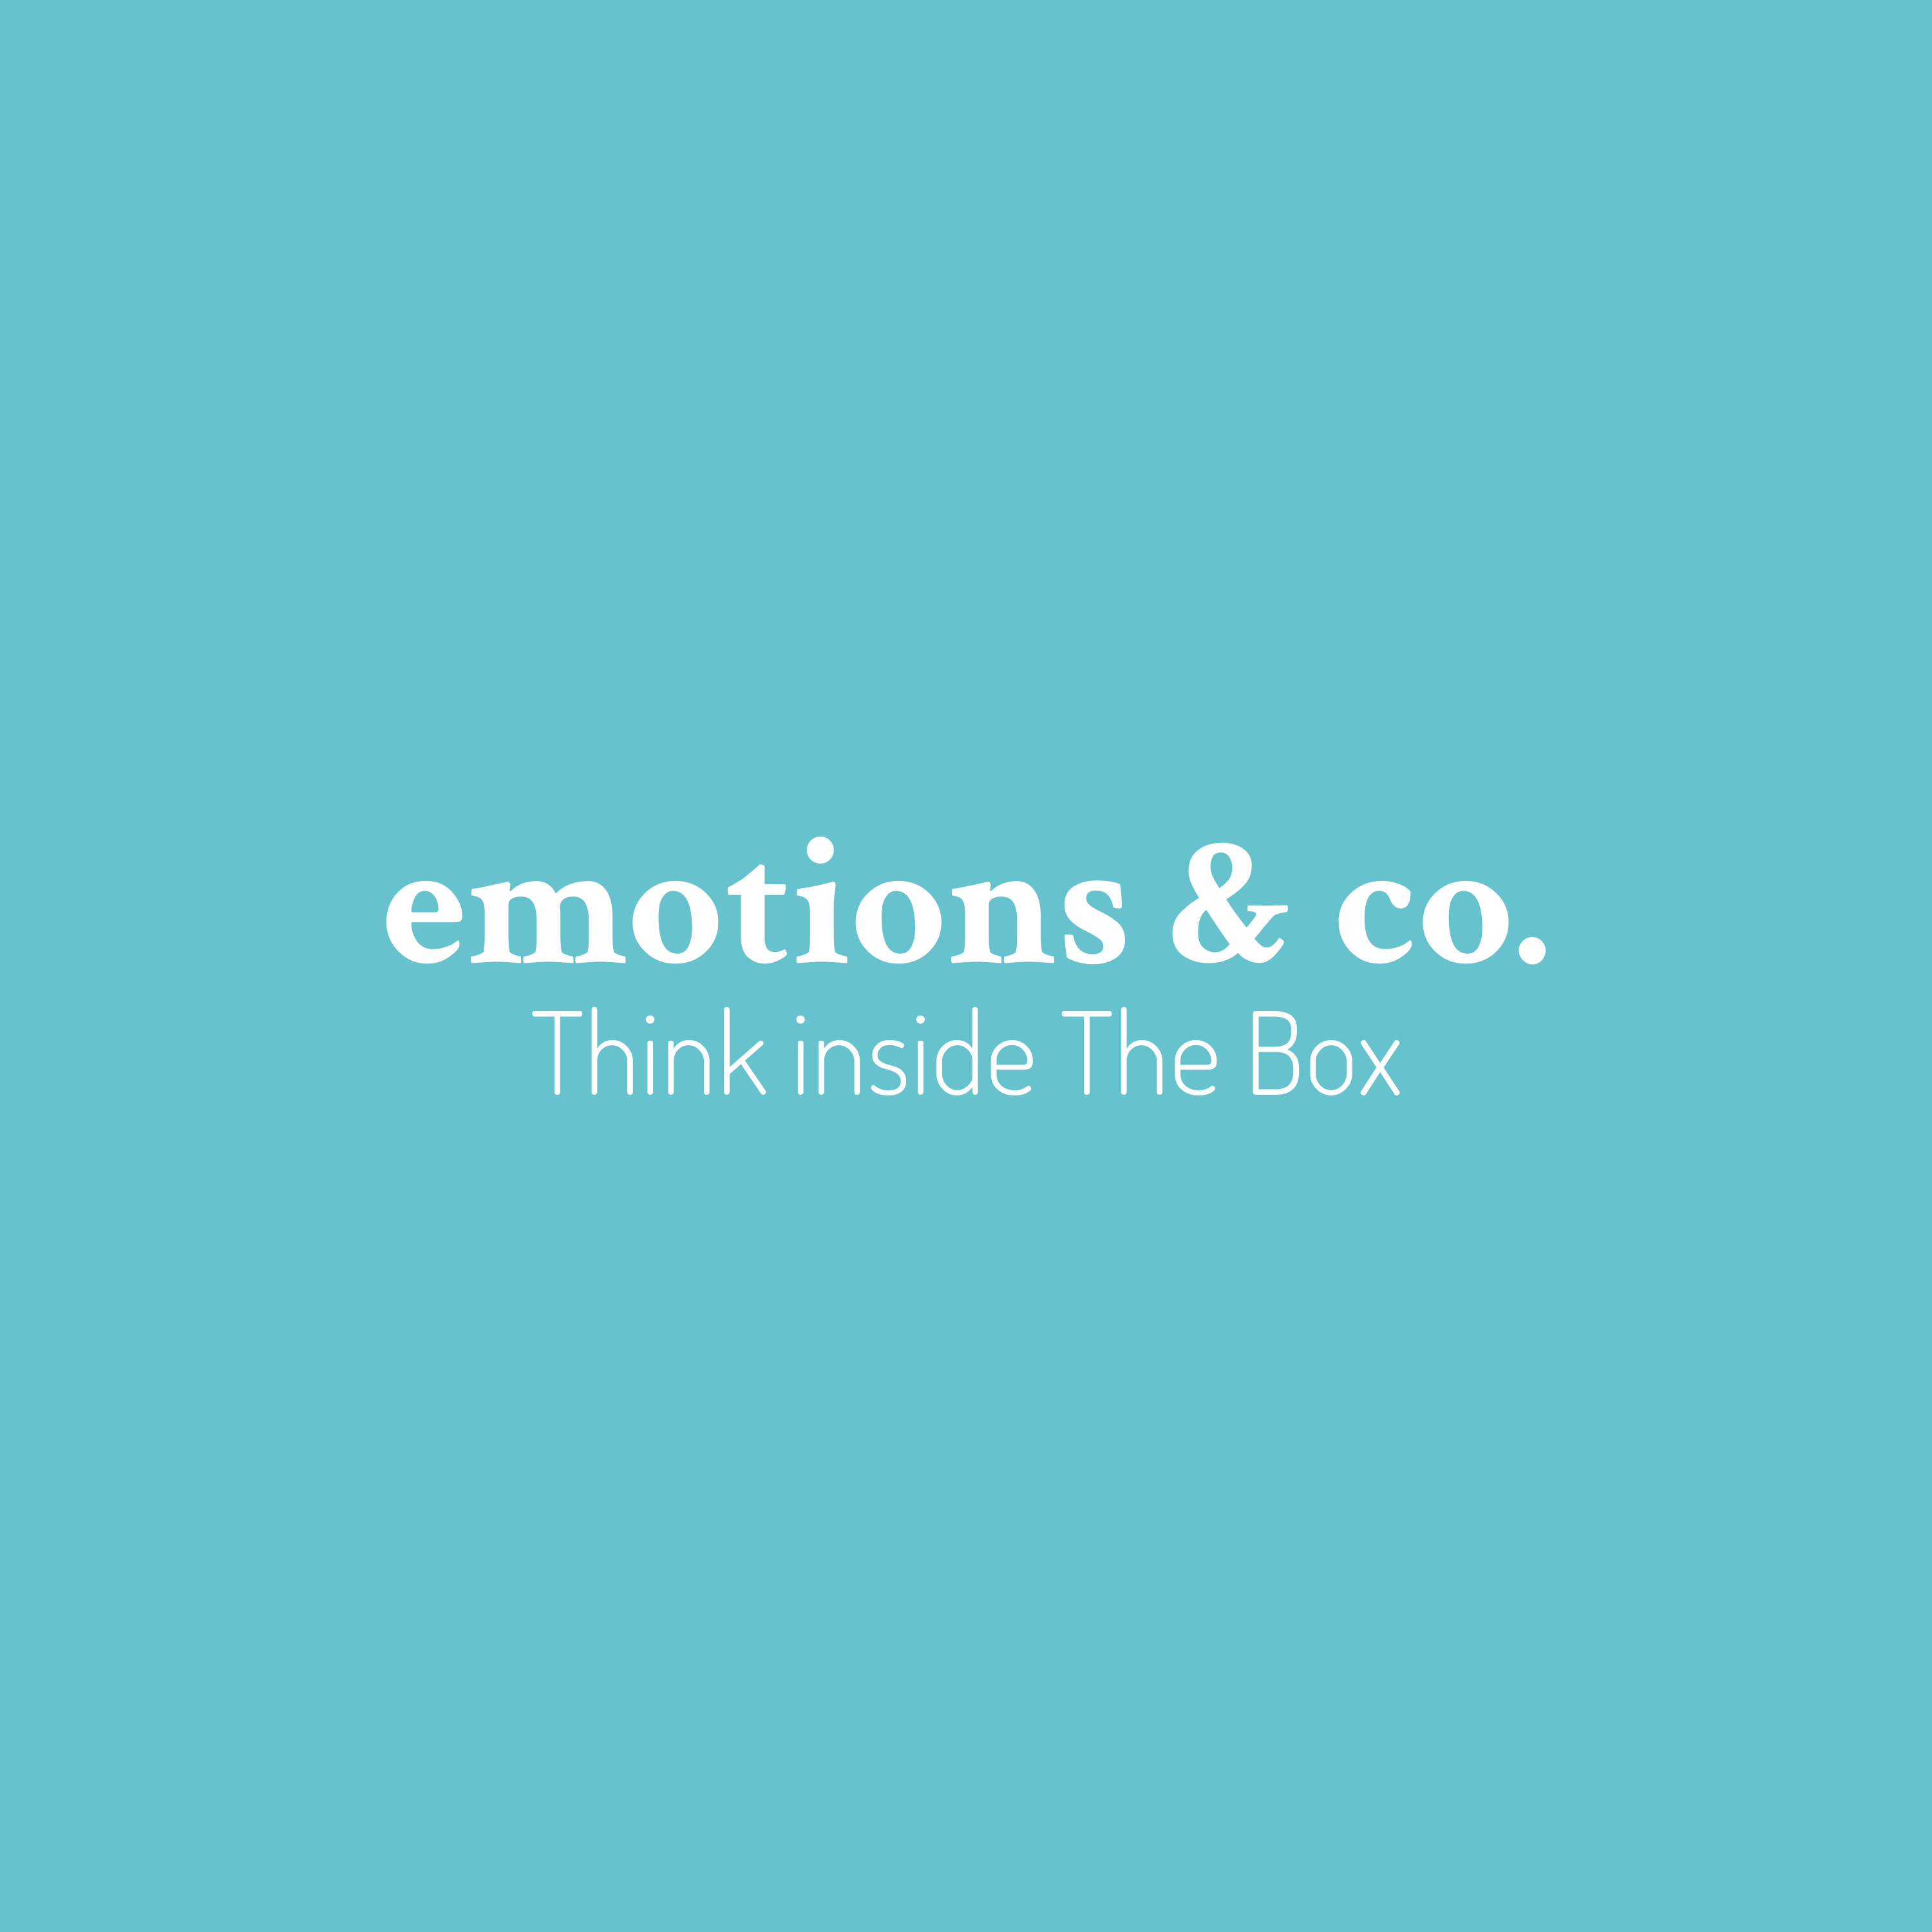 emotions & co.